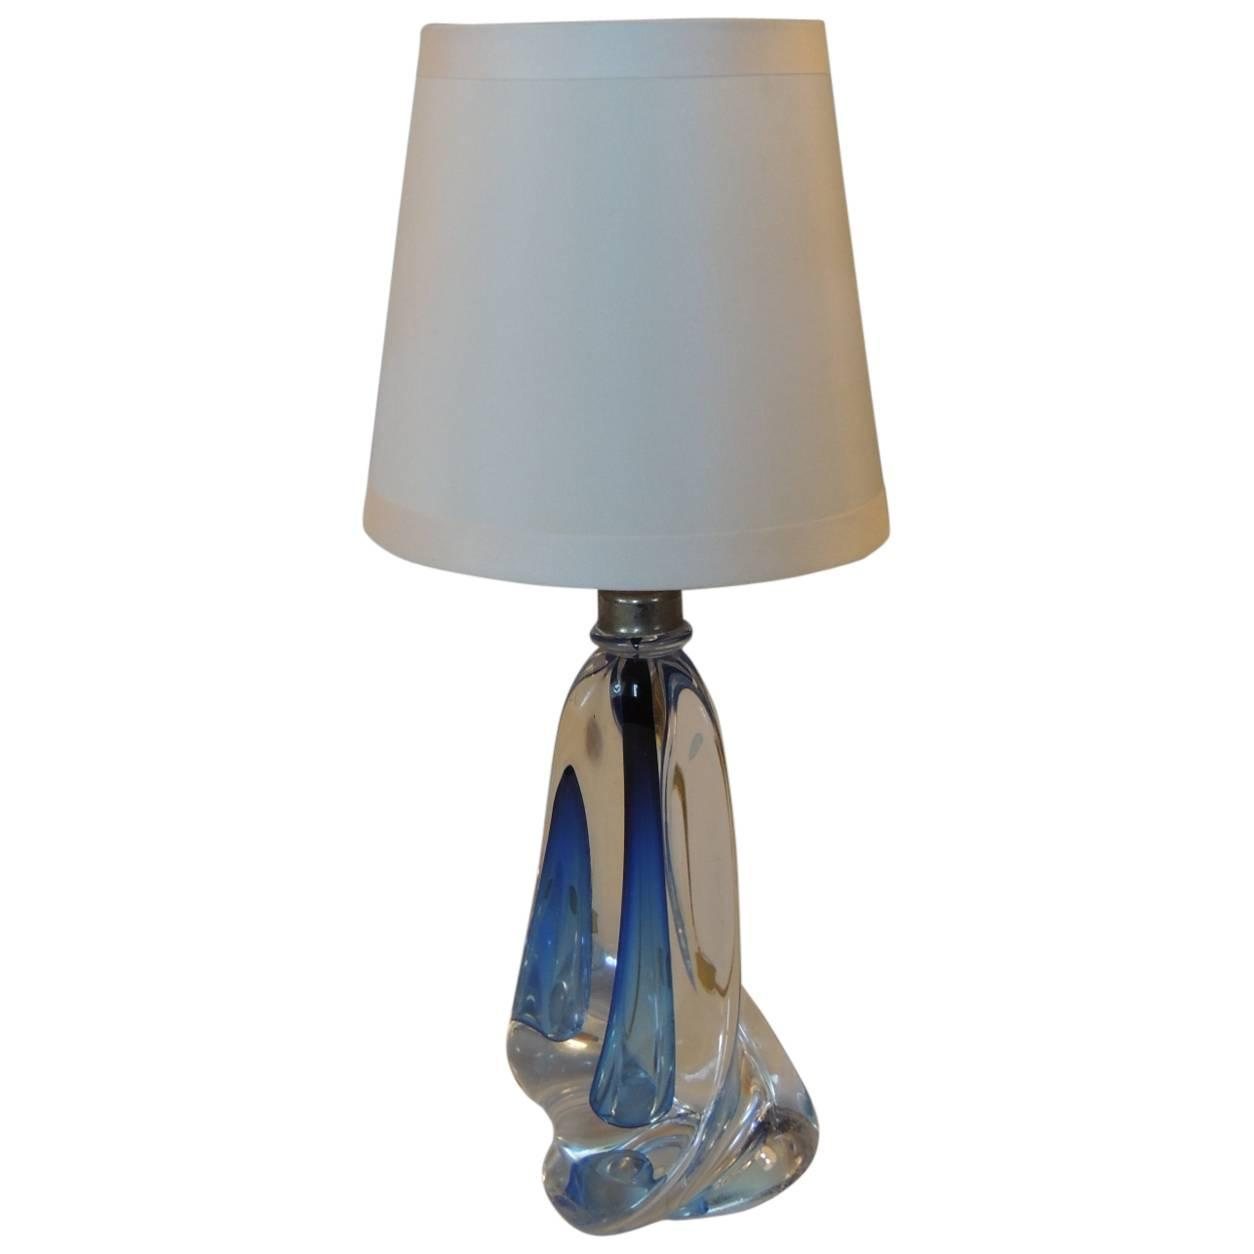 small table lamp by val st lambert with custom silk shade at 1stdibs. Black Bedroom Furniture Sets. Home Design Ideas